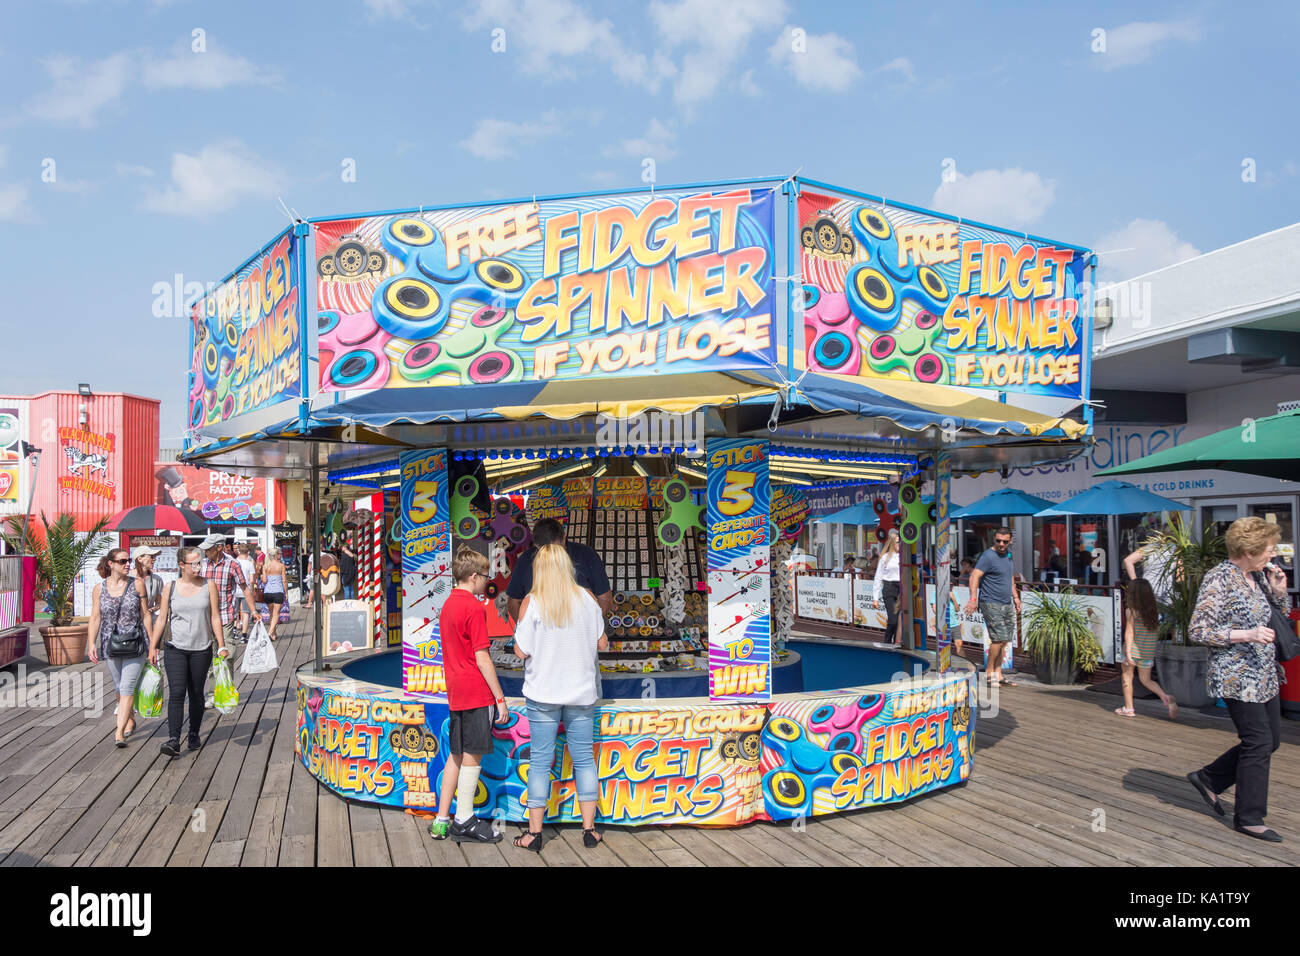 Fidget Spinner game stall on Clacton Pier, Clacton-on-Sea, Essex, England, United Kingdom - Stock Image